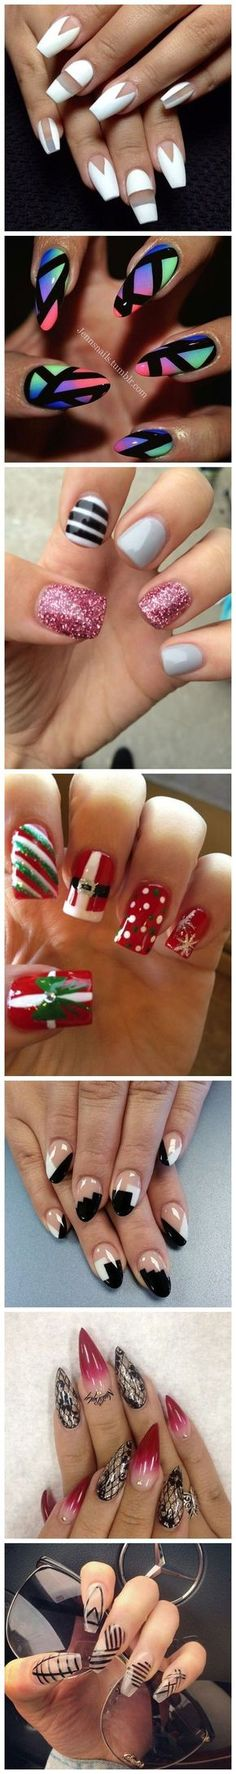 7 Cute & Easy Fall Nail Art Designs, Ideas, Trends & Stickers 2015 - Fashion Te